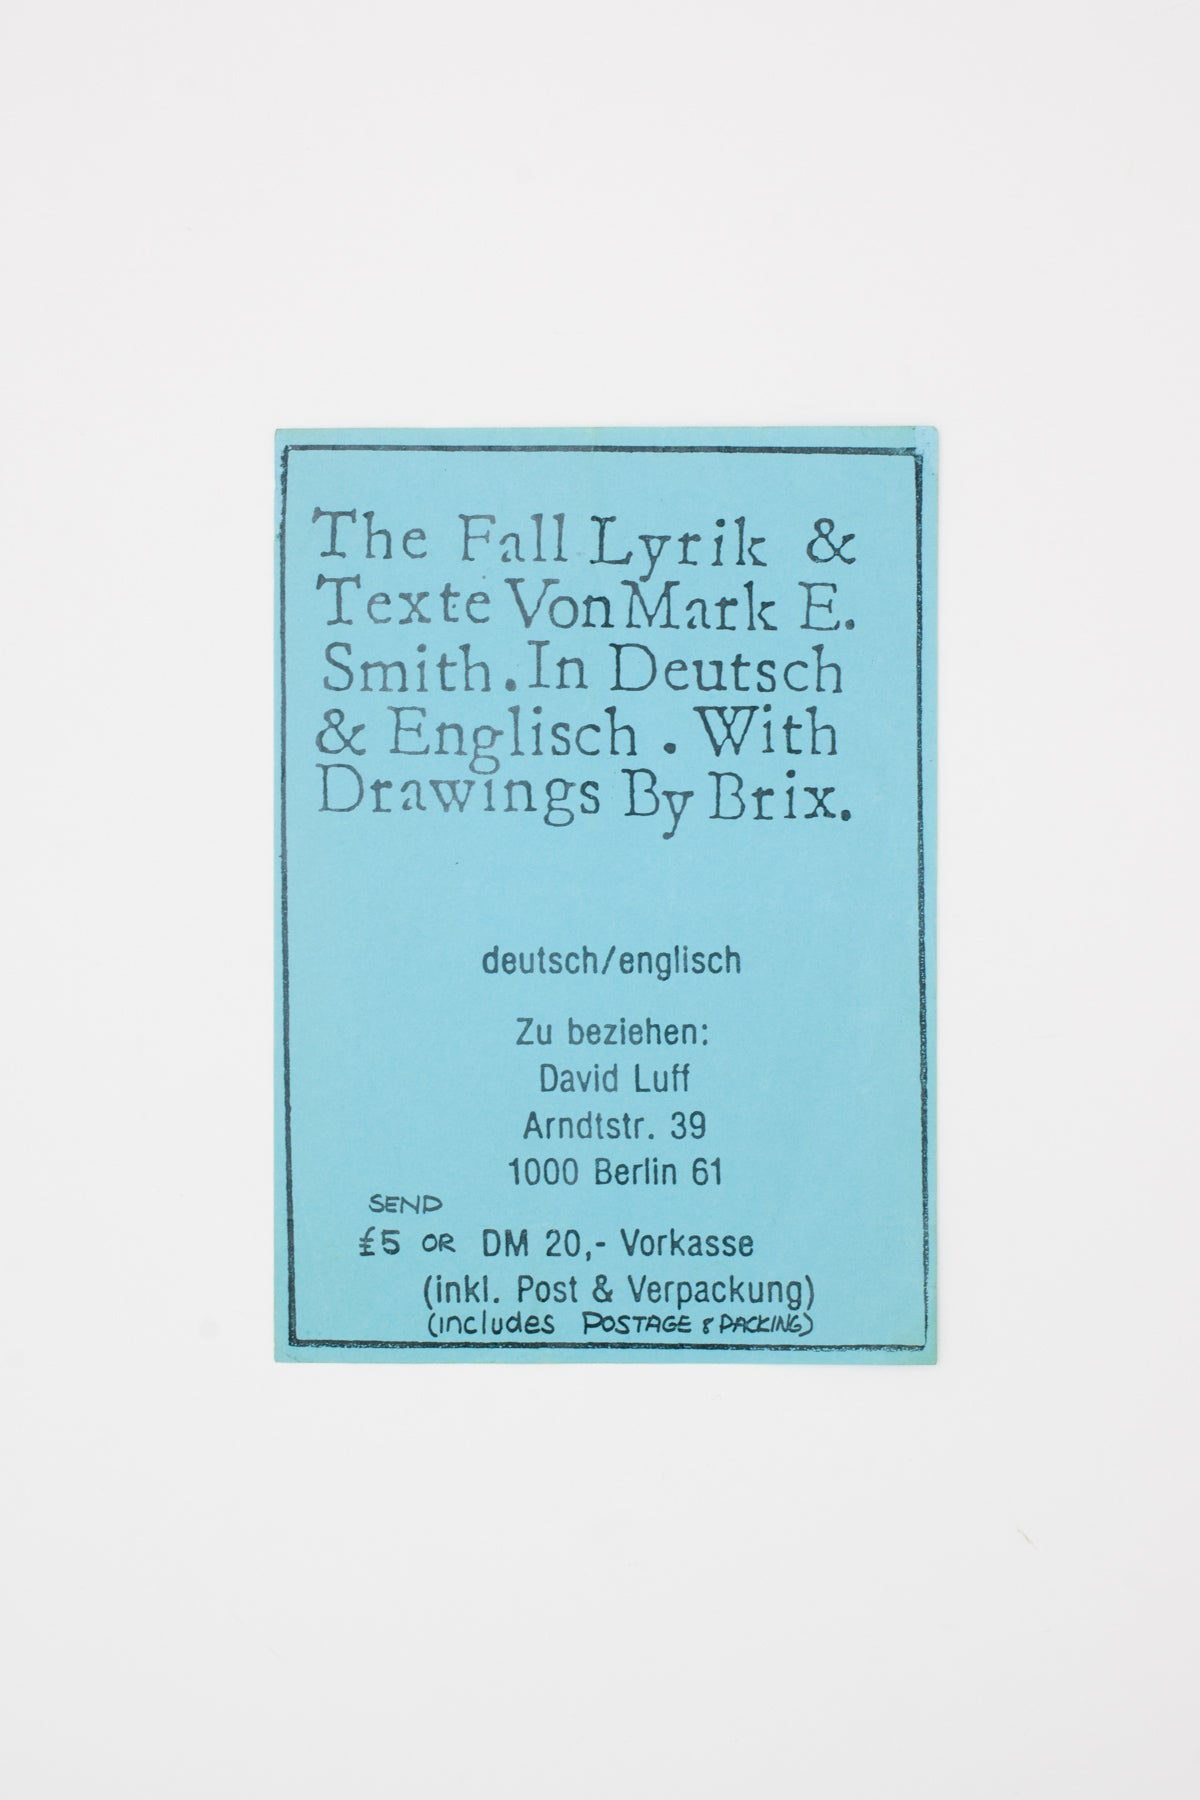 The Fall Lyrik & Texte Von Mark E. Smith. In Deutsch & Englisch. With Drawings by Brix